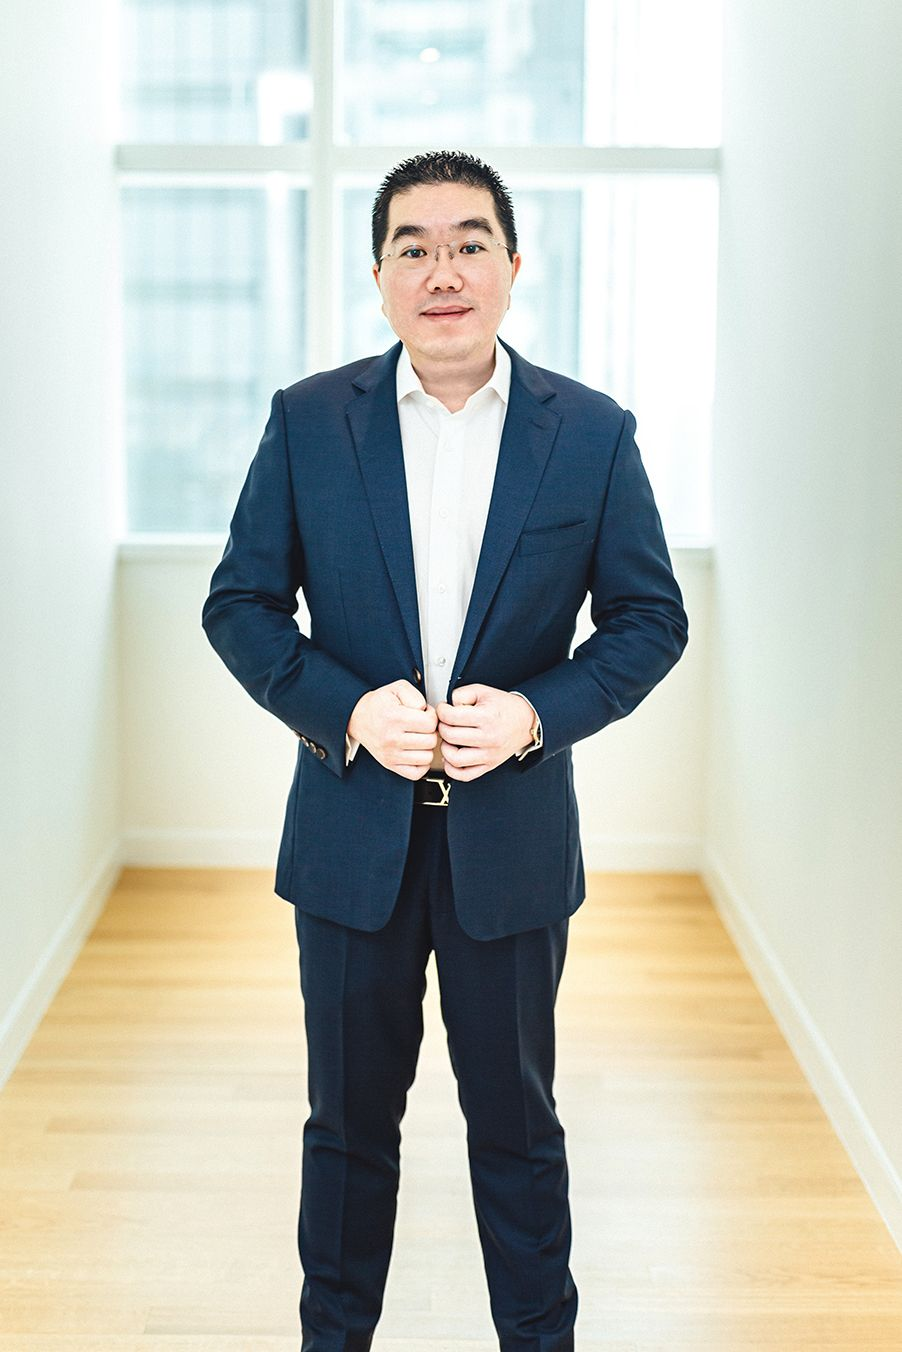 Cornerstone's Jason Chong On How He Hit The Ground Running As A Hotelier